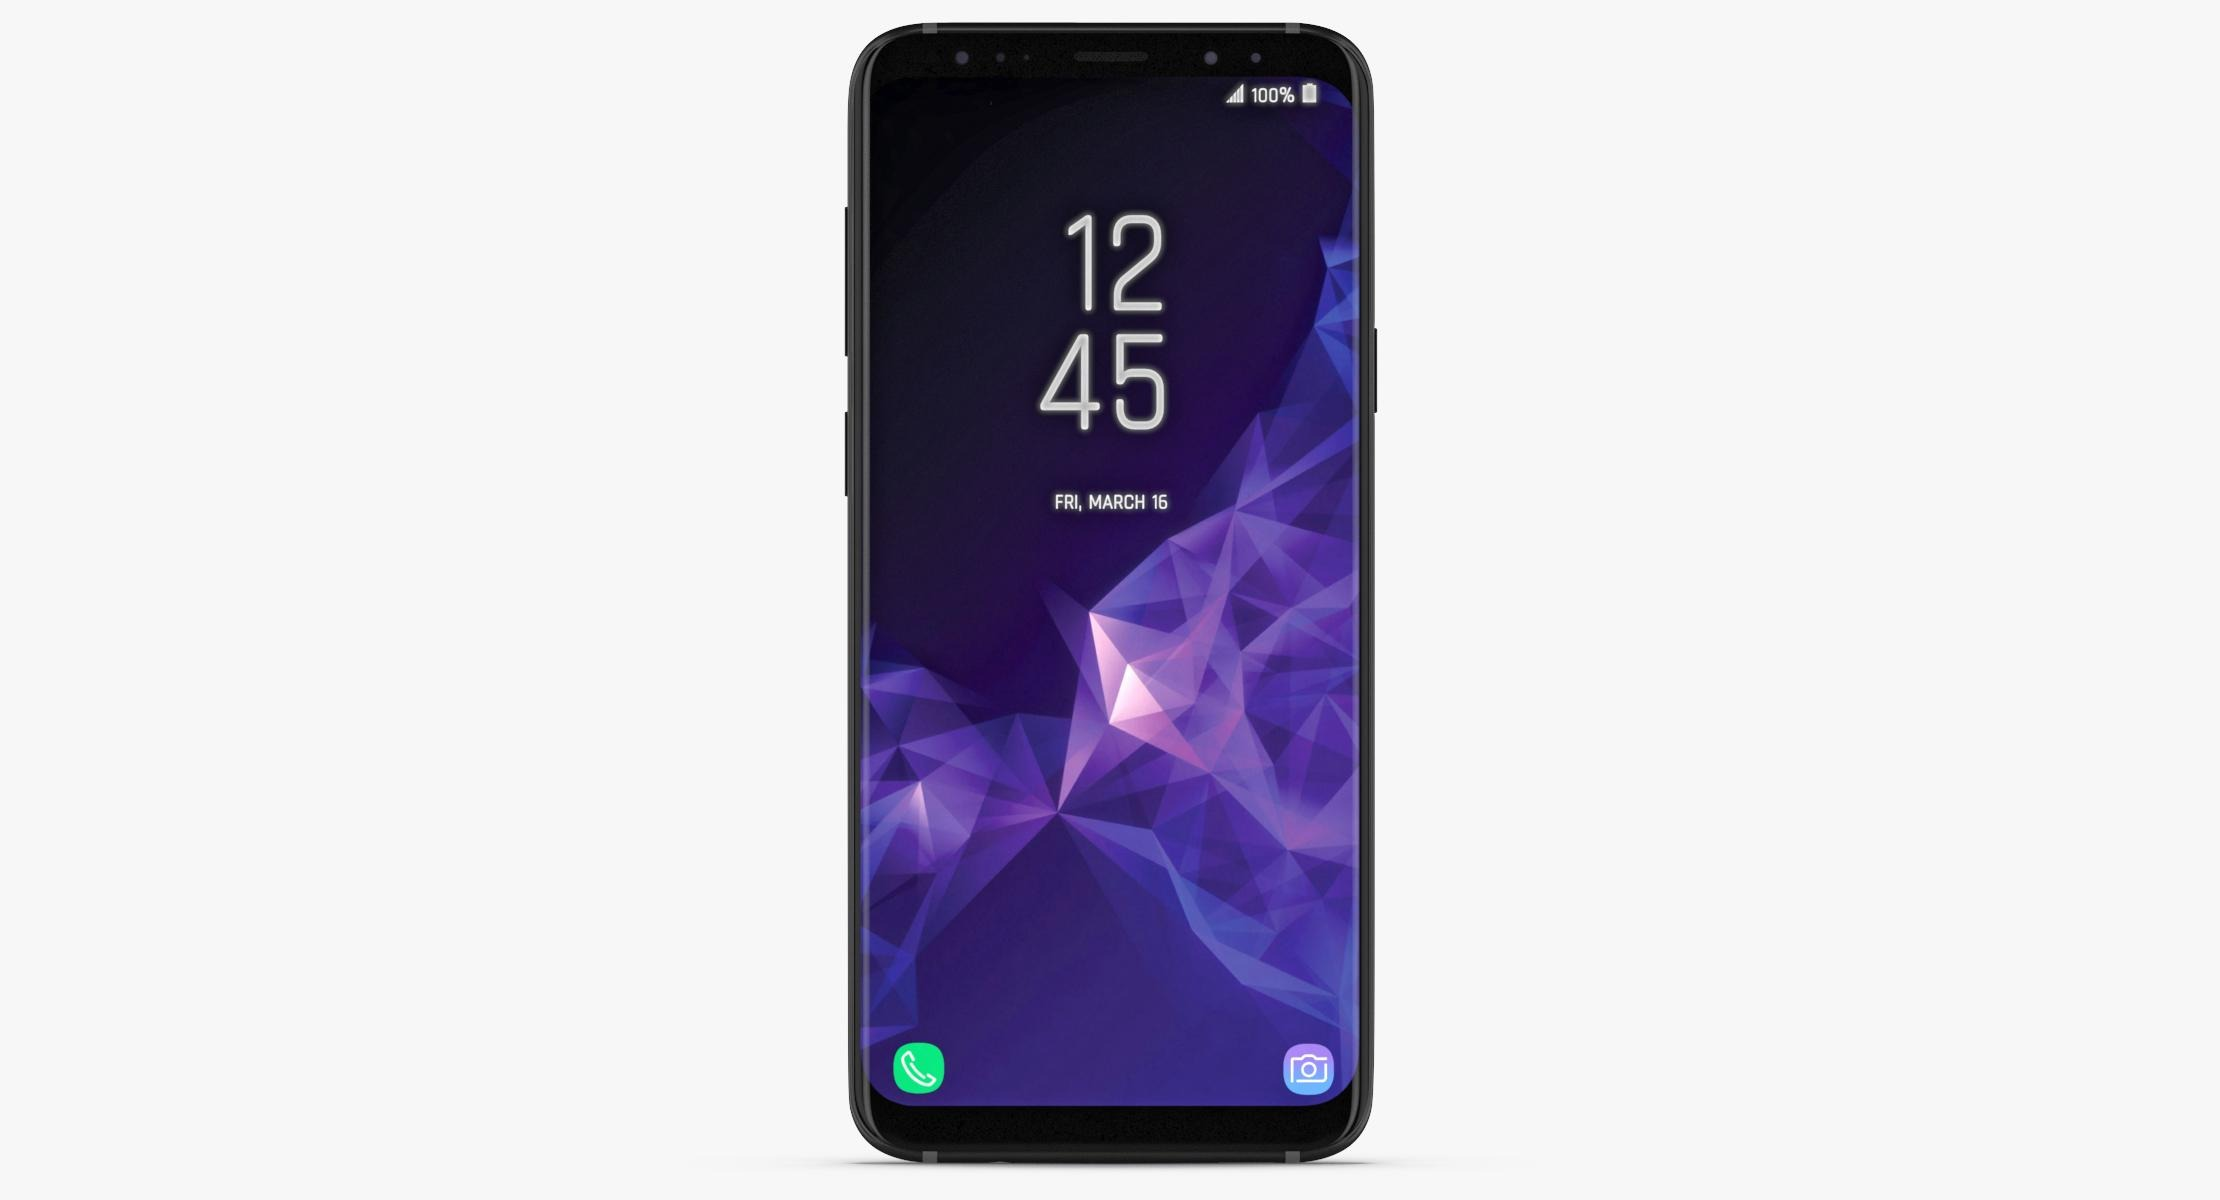 Samsung Galaxy S9 + (ALL COLORS) - reel 1